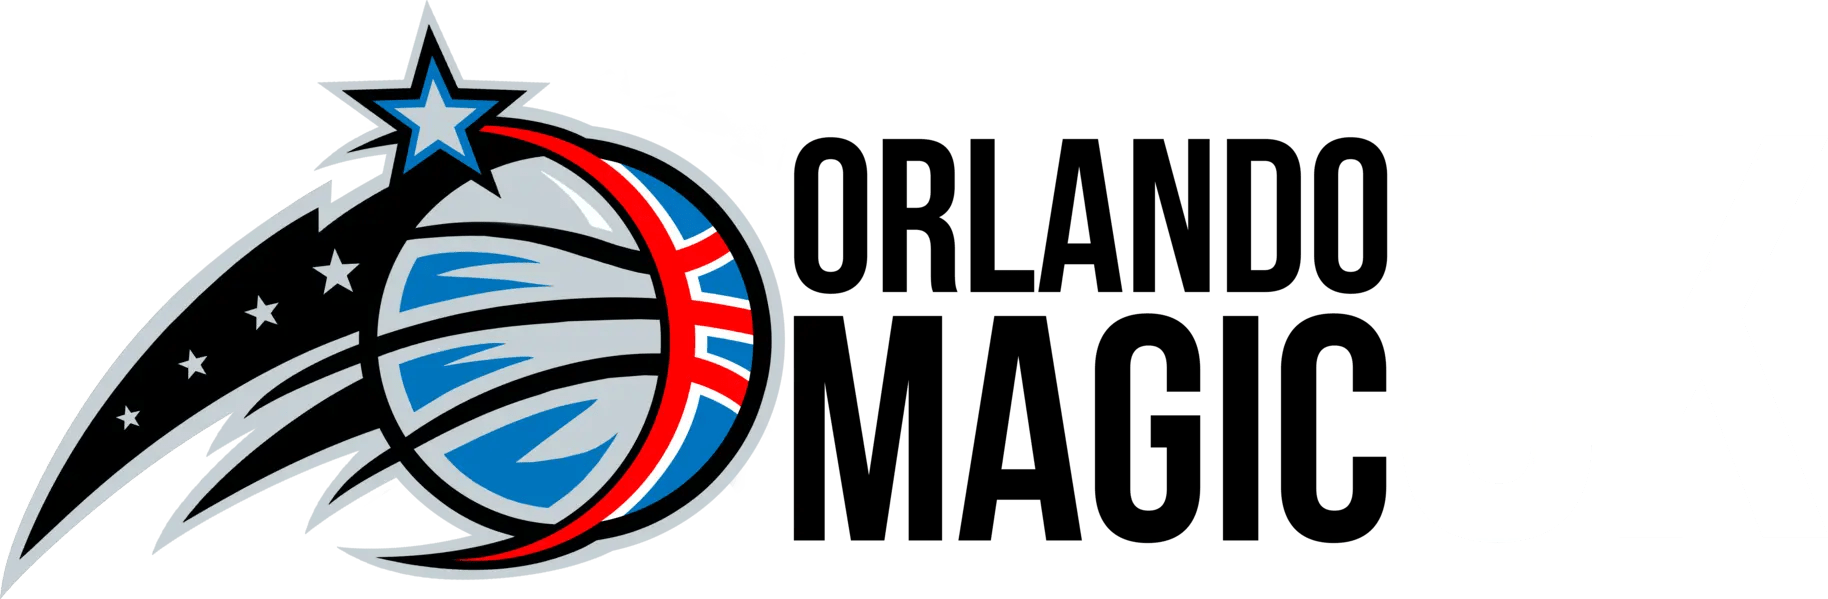 Orlando Magic UK